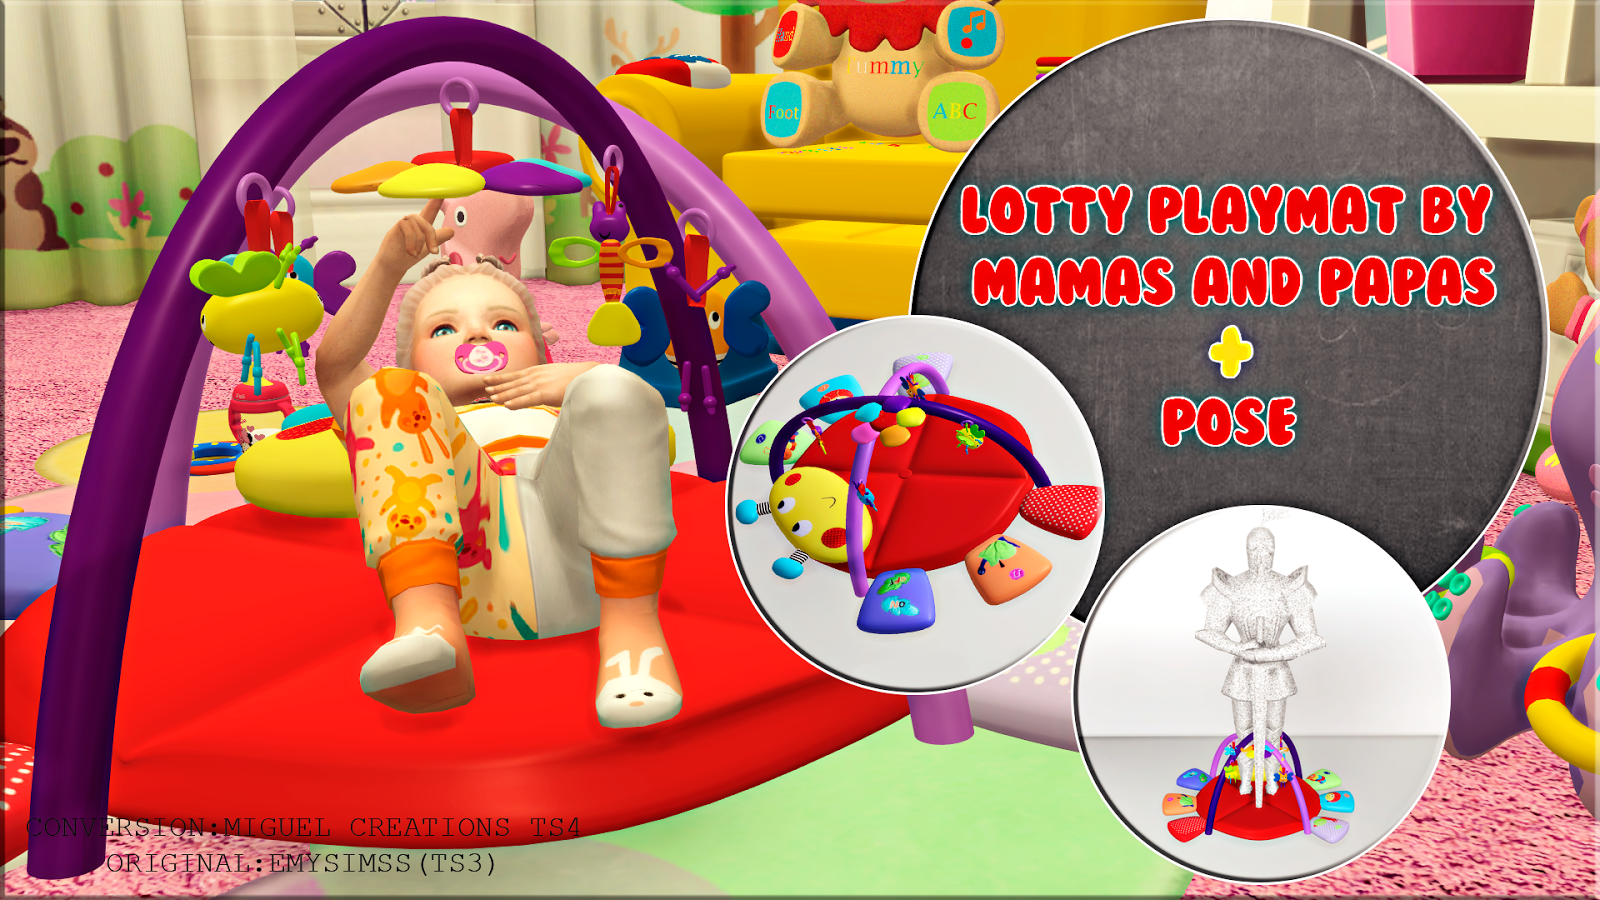 Miguel Creations TS4: Lotty playmat by mamas and papas + Pose